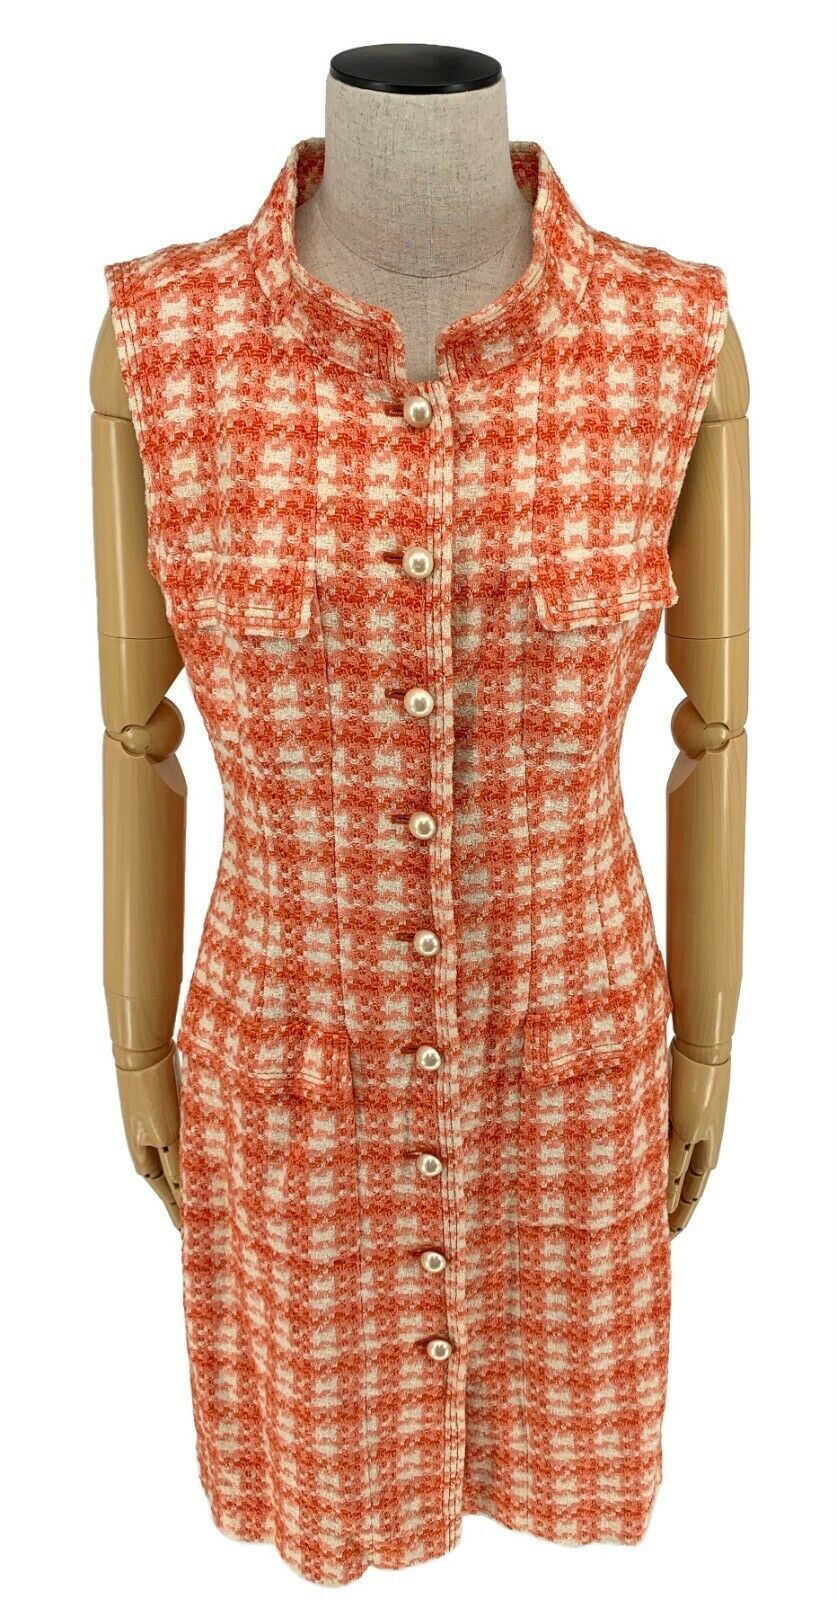 Authentique chanel vintage 01p coco mark tweed robe sans manches #40 orange rank